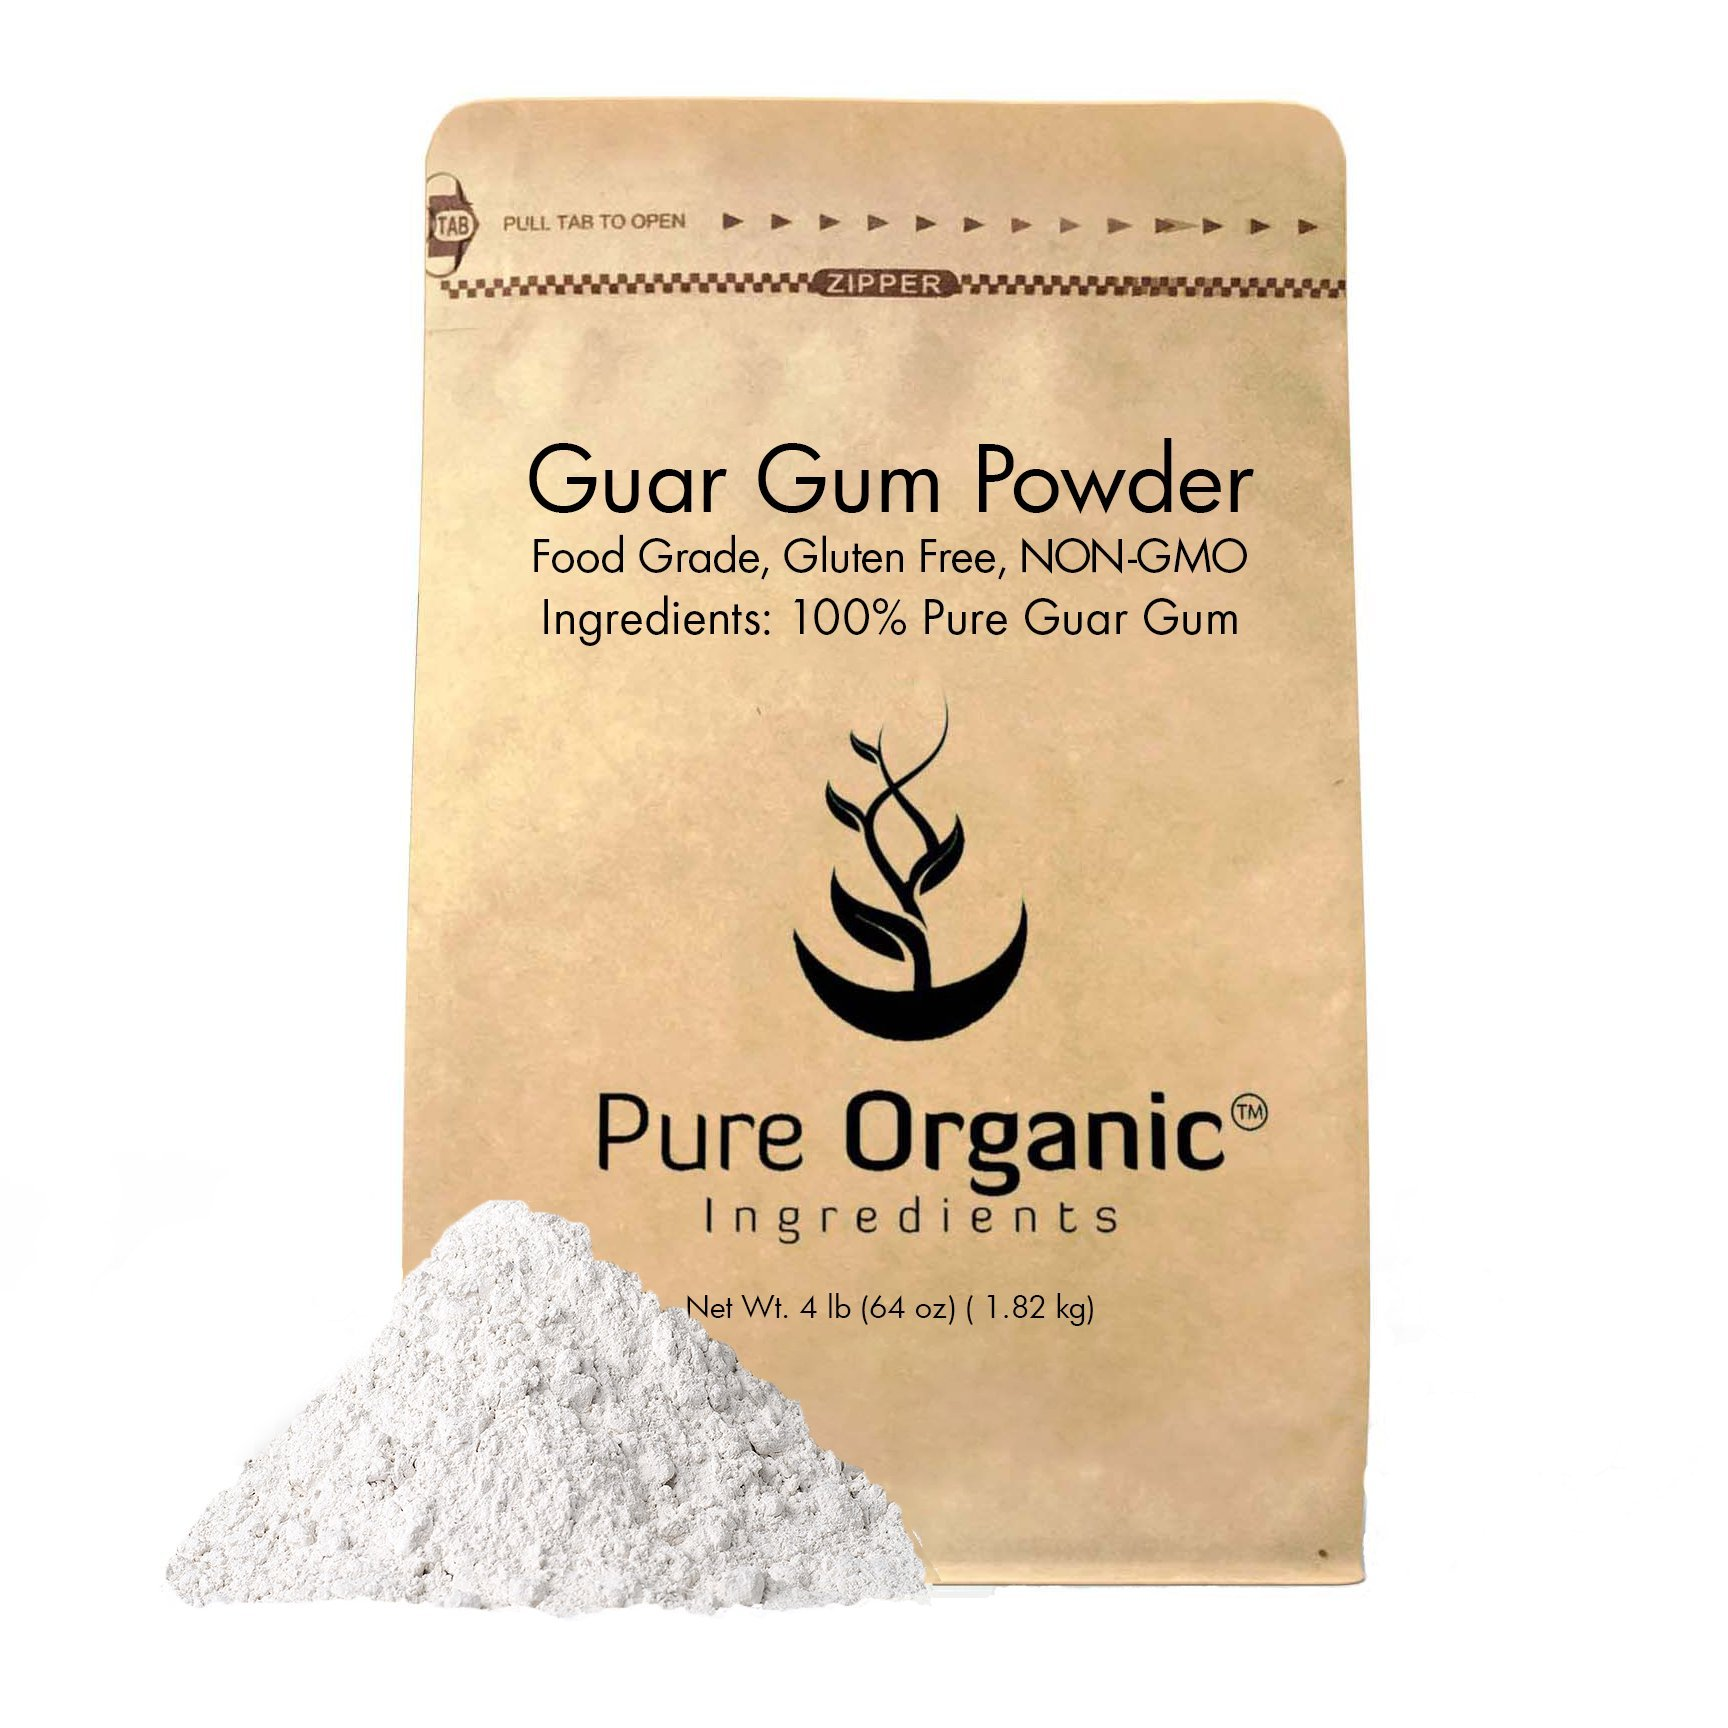 Pure Organic Ingredients Guar Gum Powder, 4 lb, 100% Food Grade, Gluten Free, Non-GMO,Thickening Agent